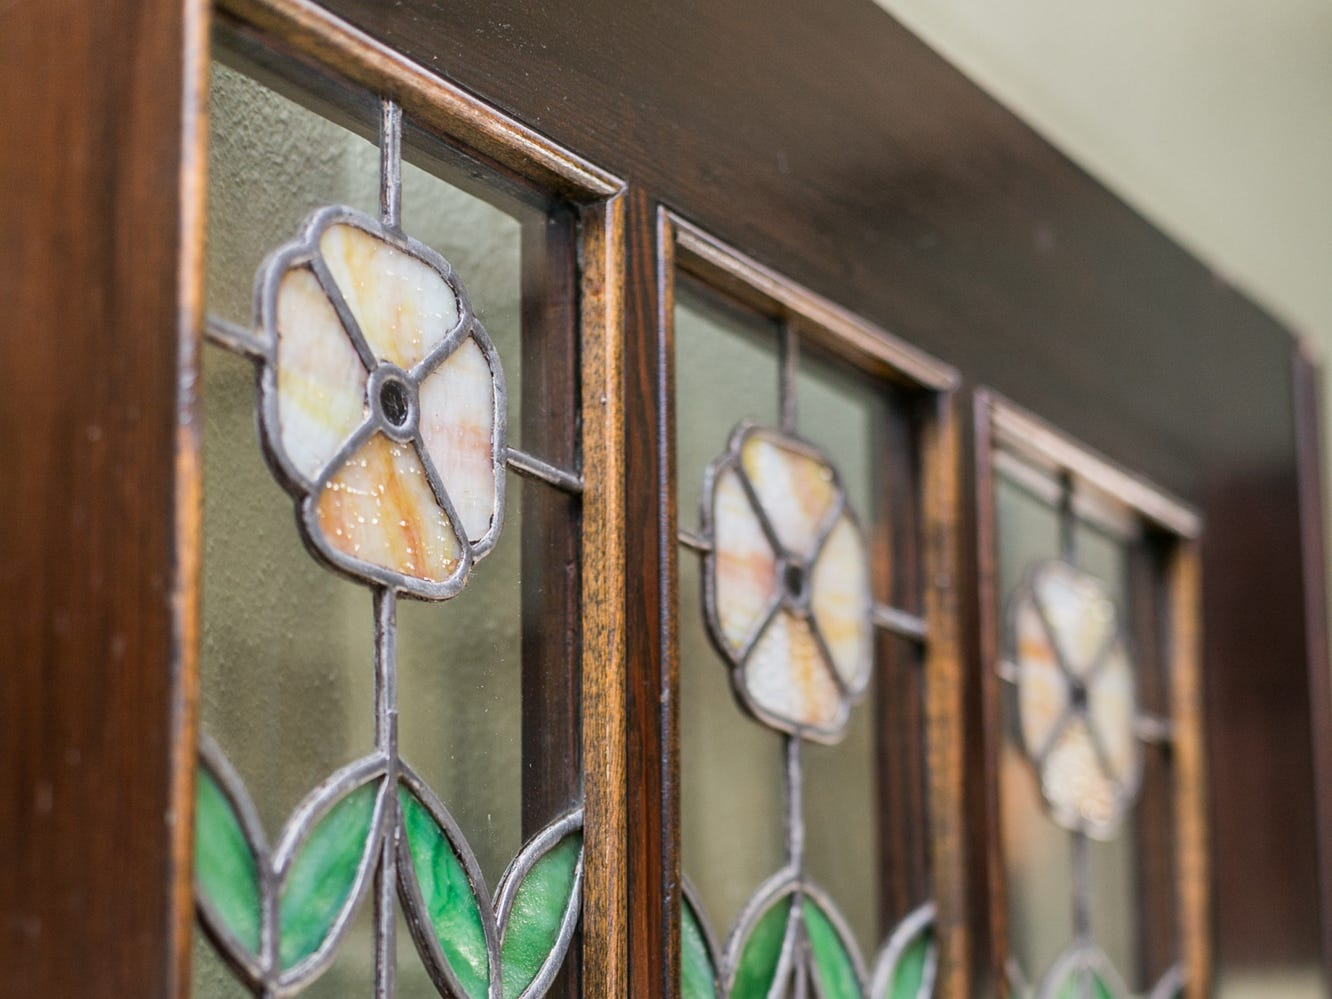 It was love at first sight when Cheryl spotted these leaded panels. The Springfield home of Cheryl Braswell on November 21, 2018.